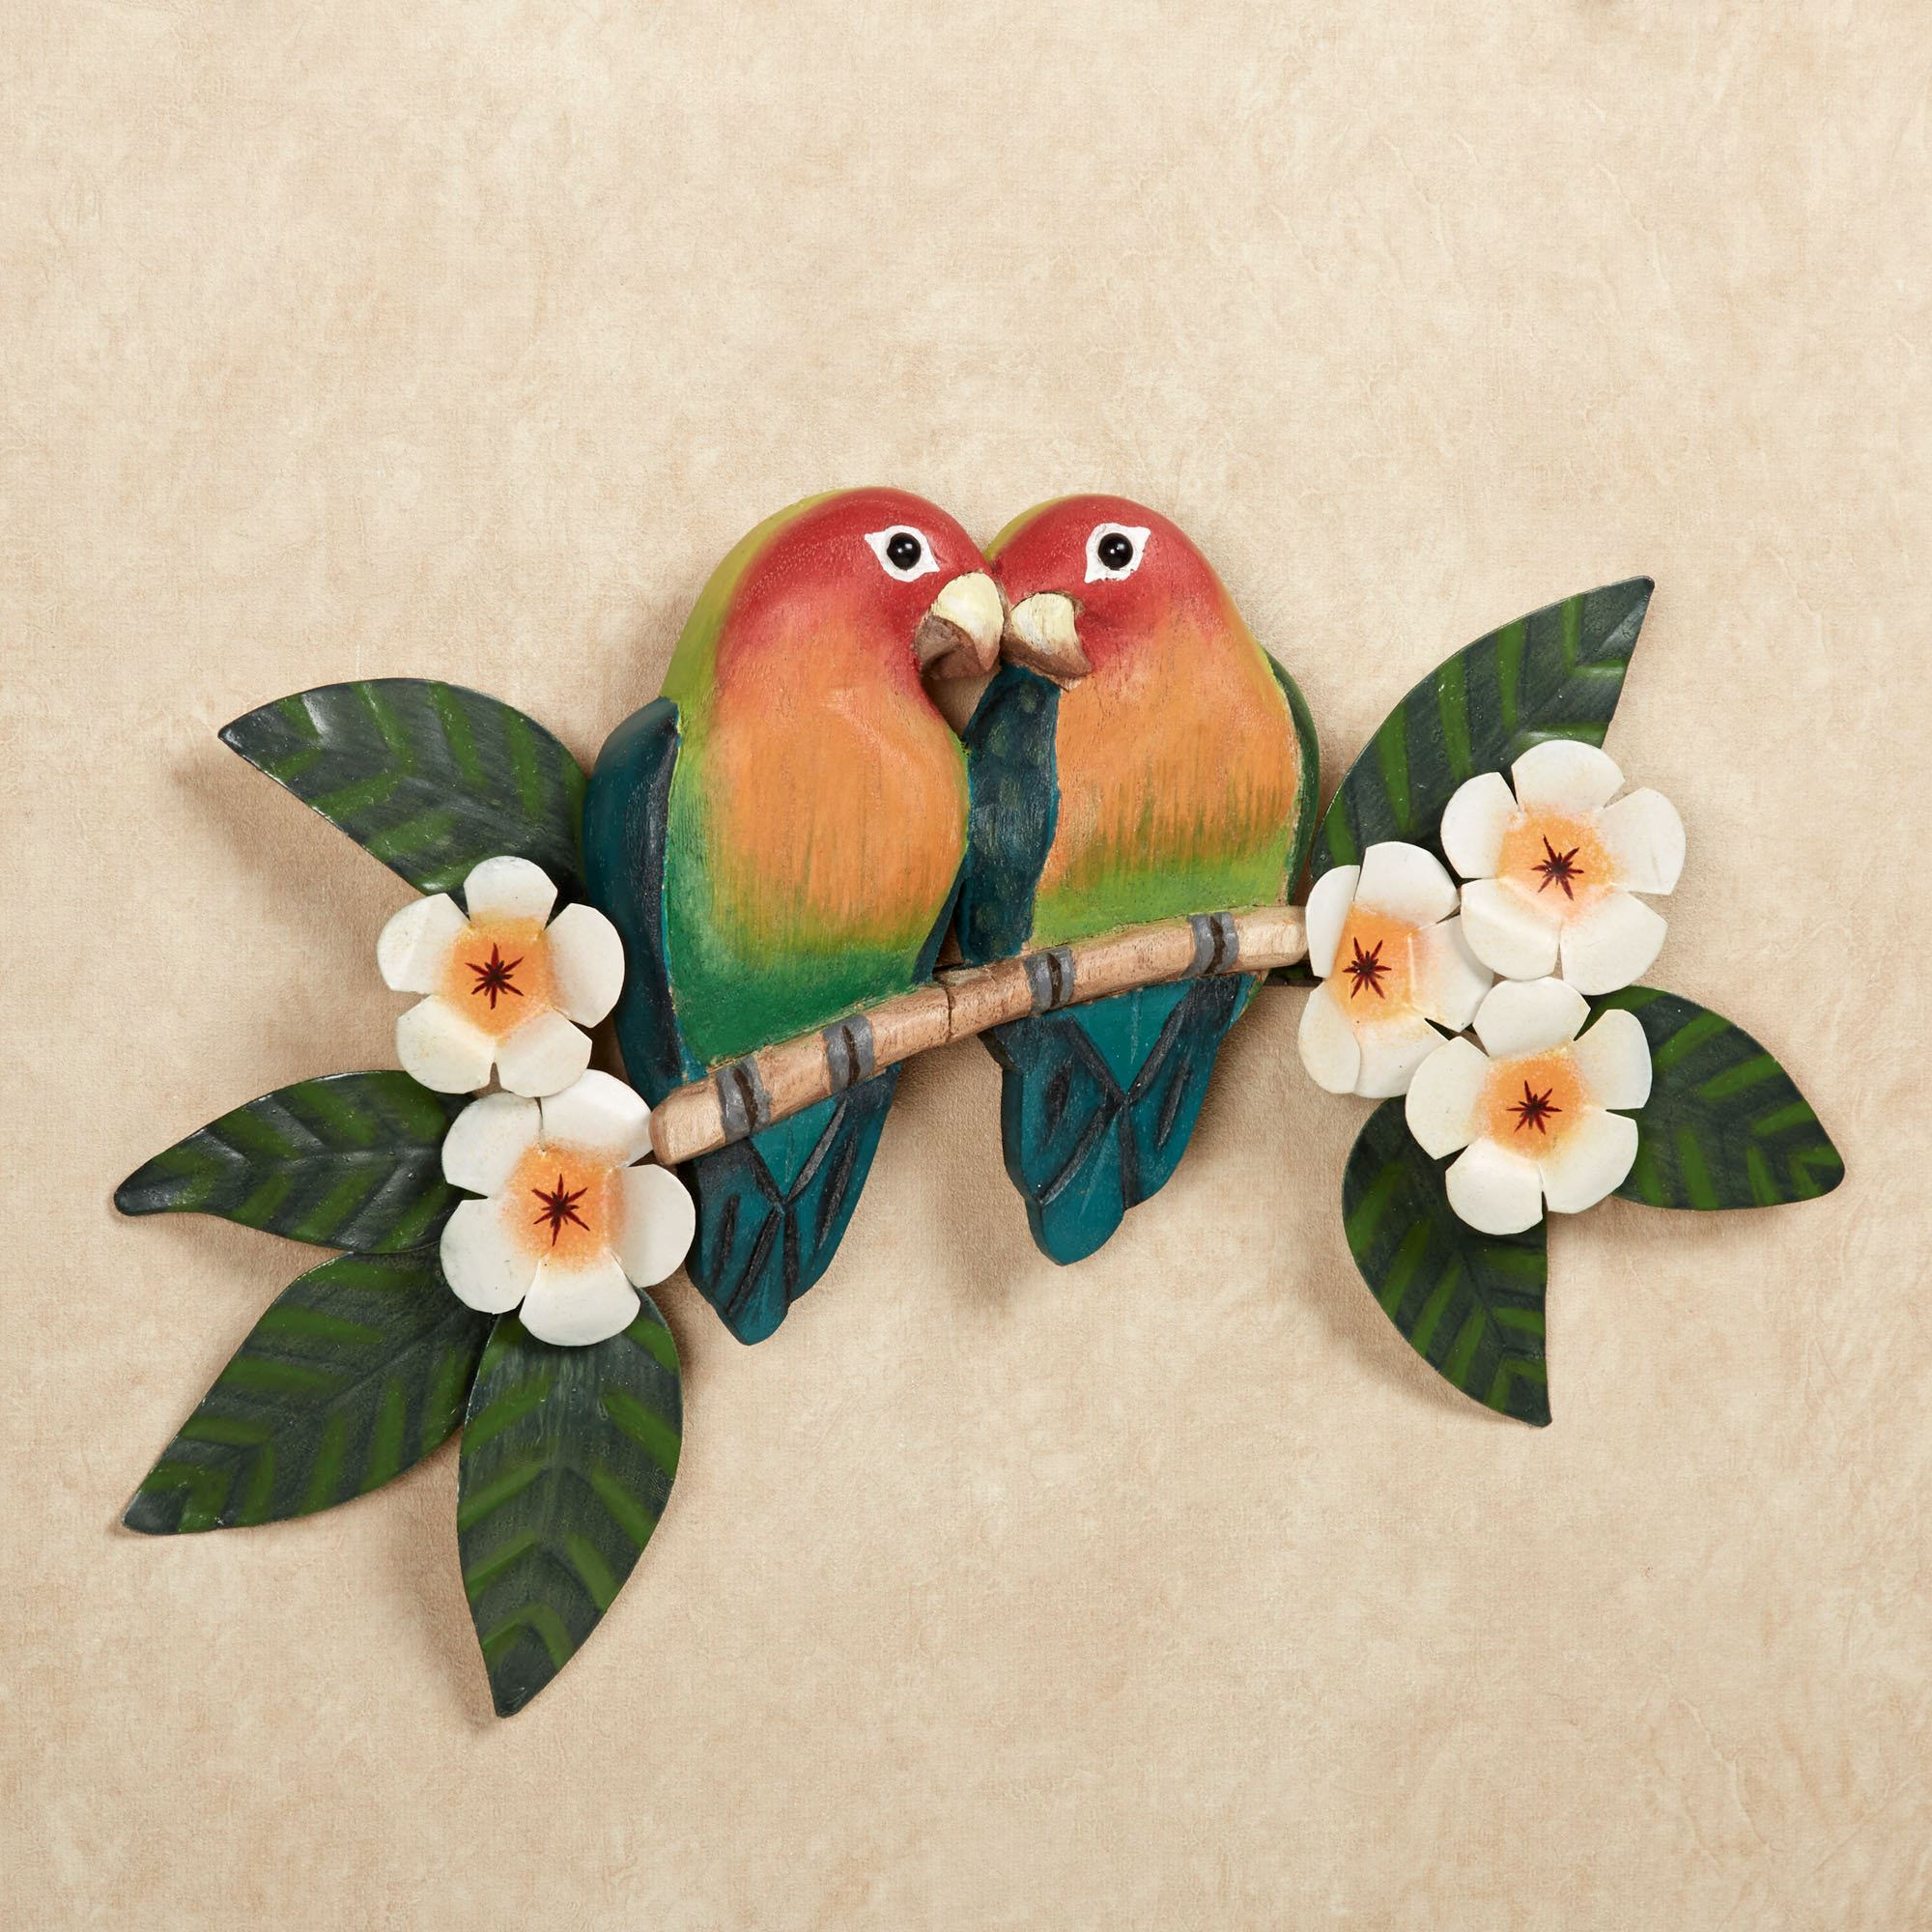 Lovebirds Parrot Wall Art Multi Bright. Touch to zoom & Lovebirds Parrot Indoor Outdoor Wall Art